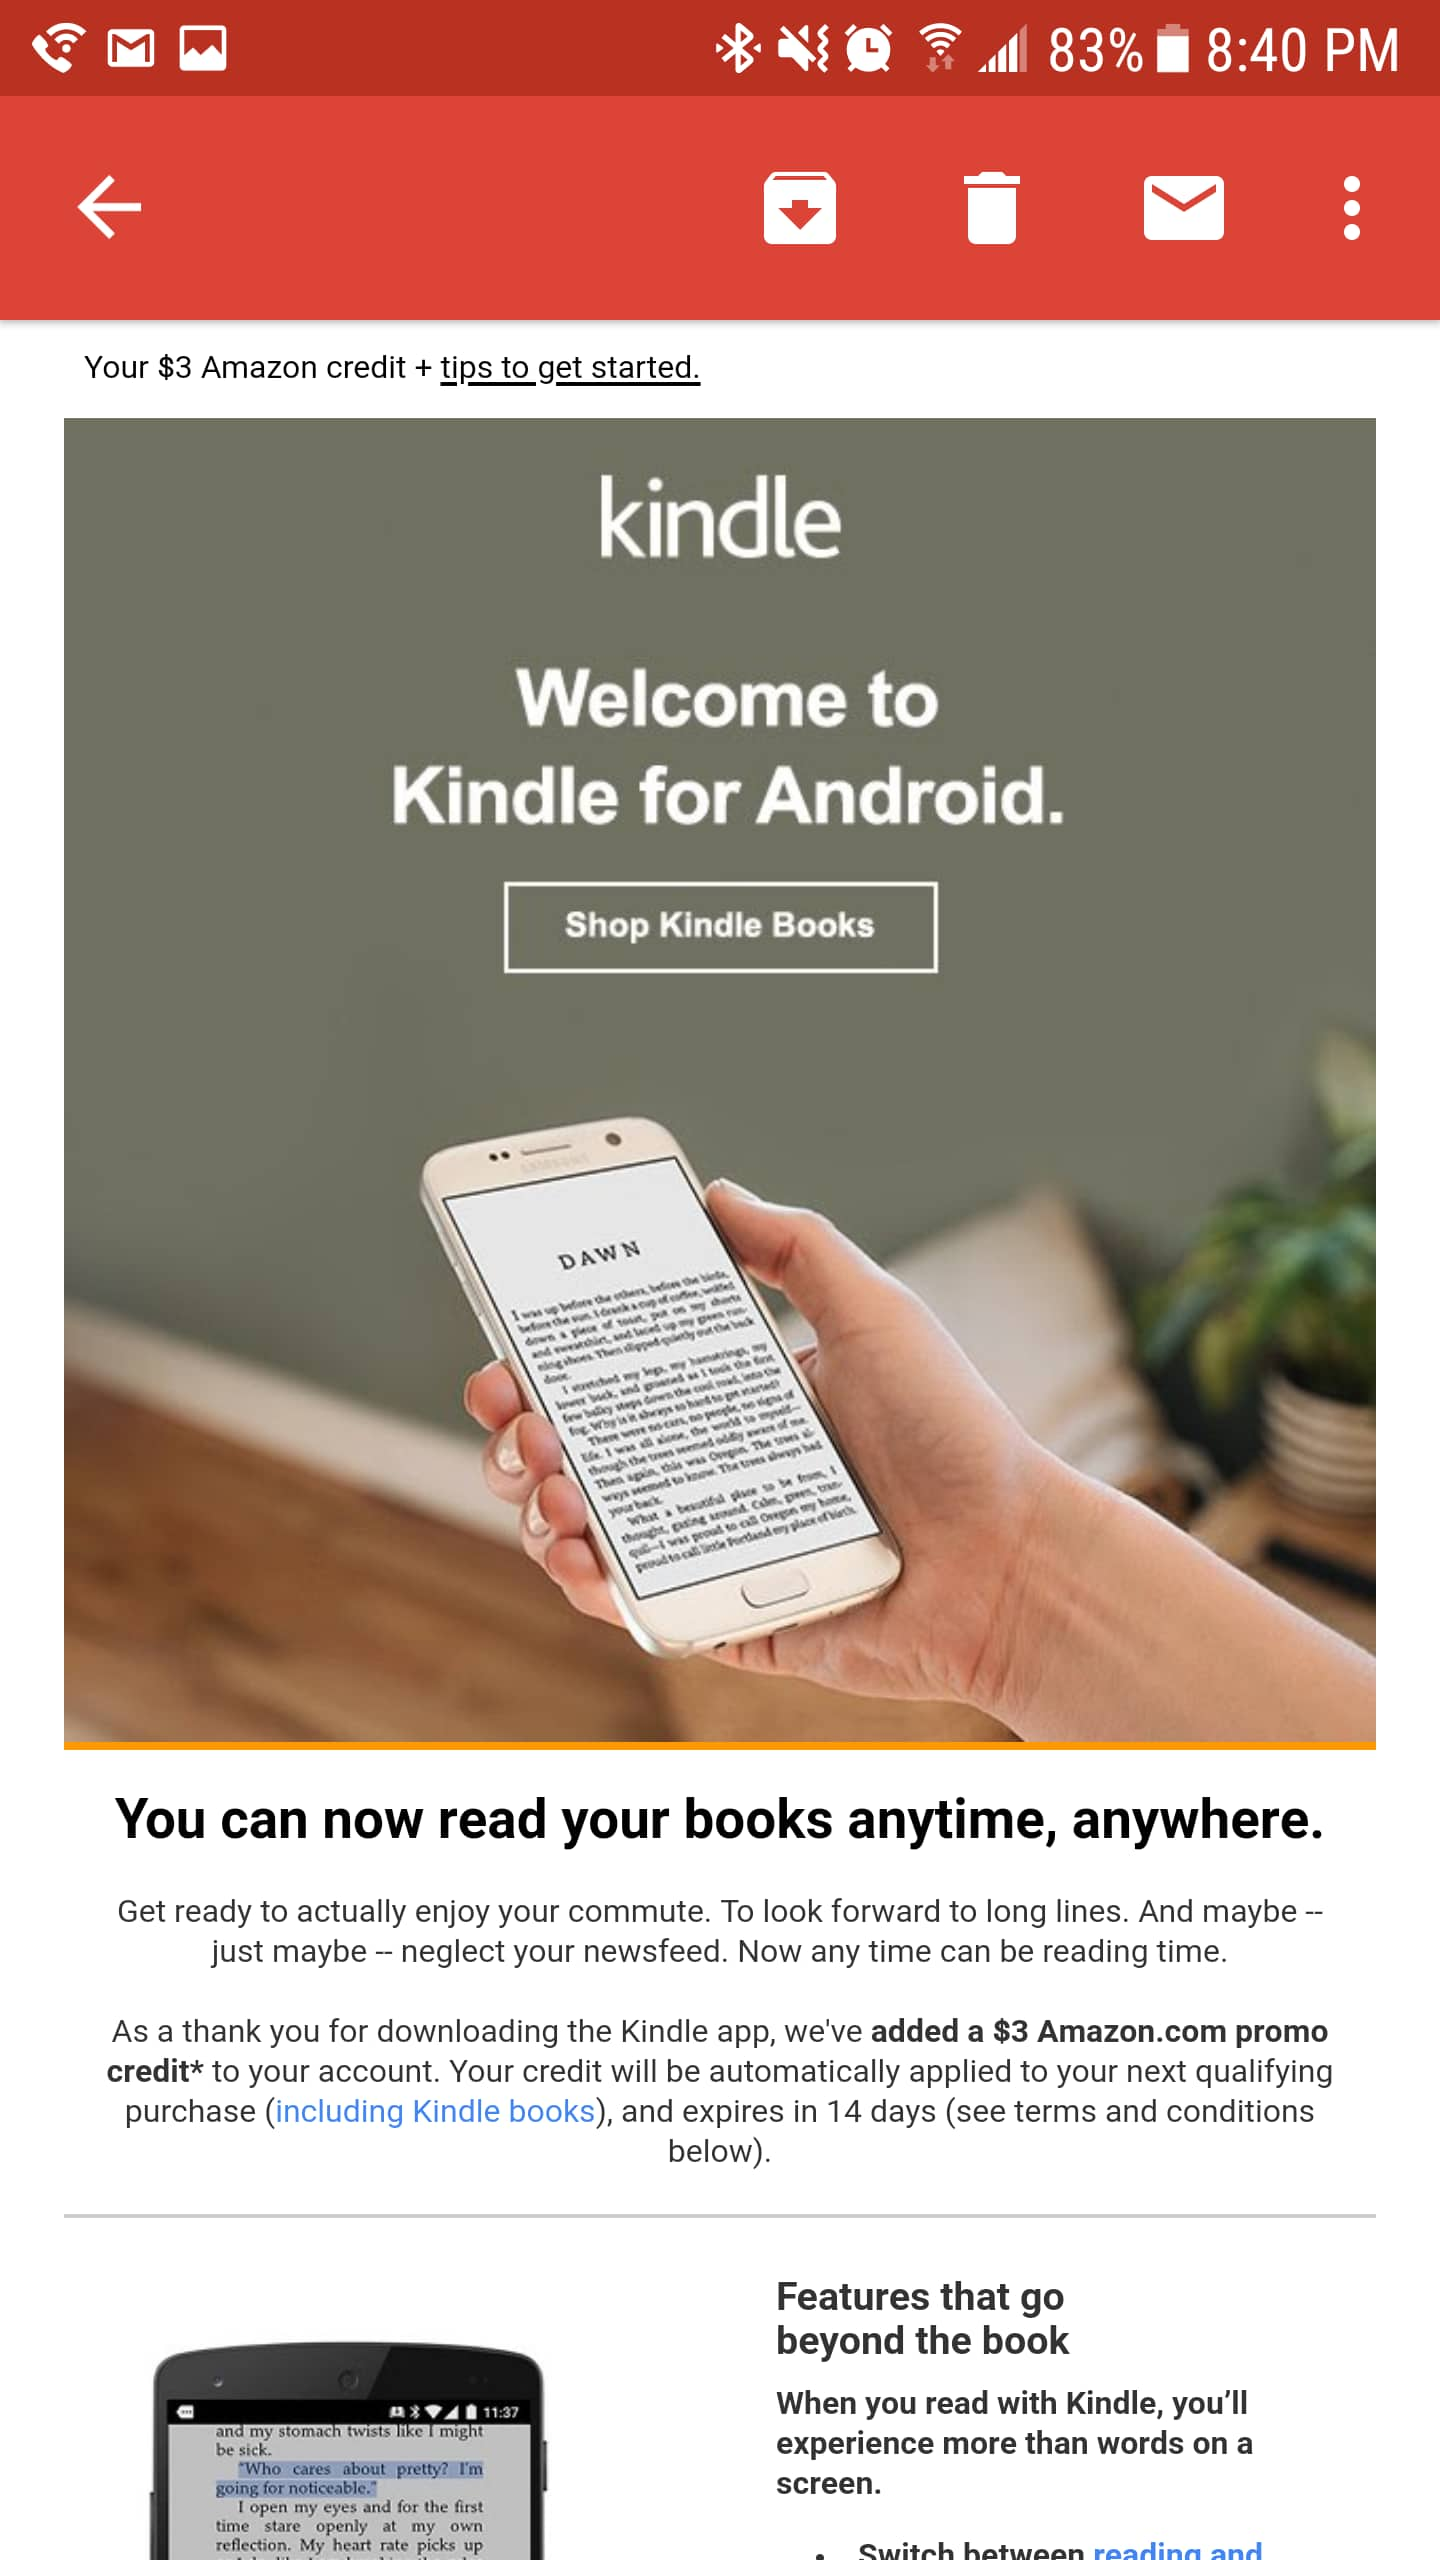 Free $3 Amazon credit for downloading Amazon Kindle app